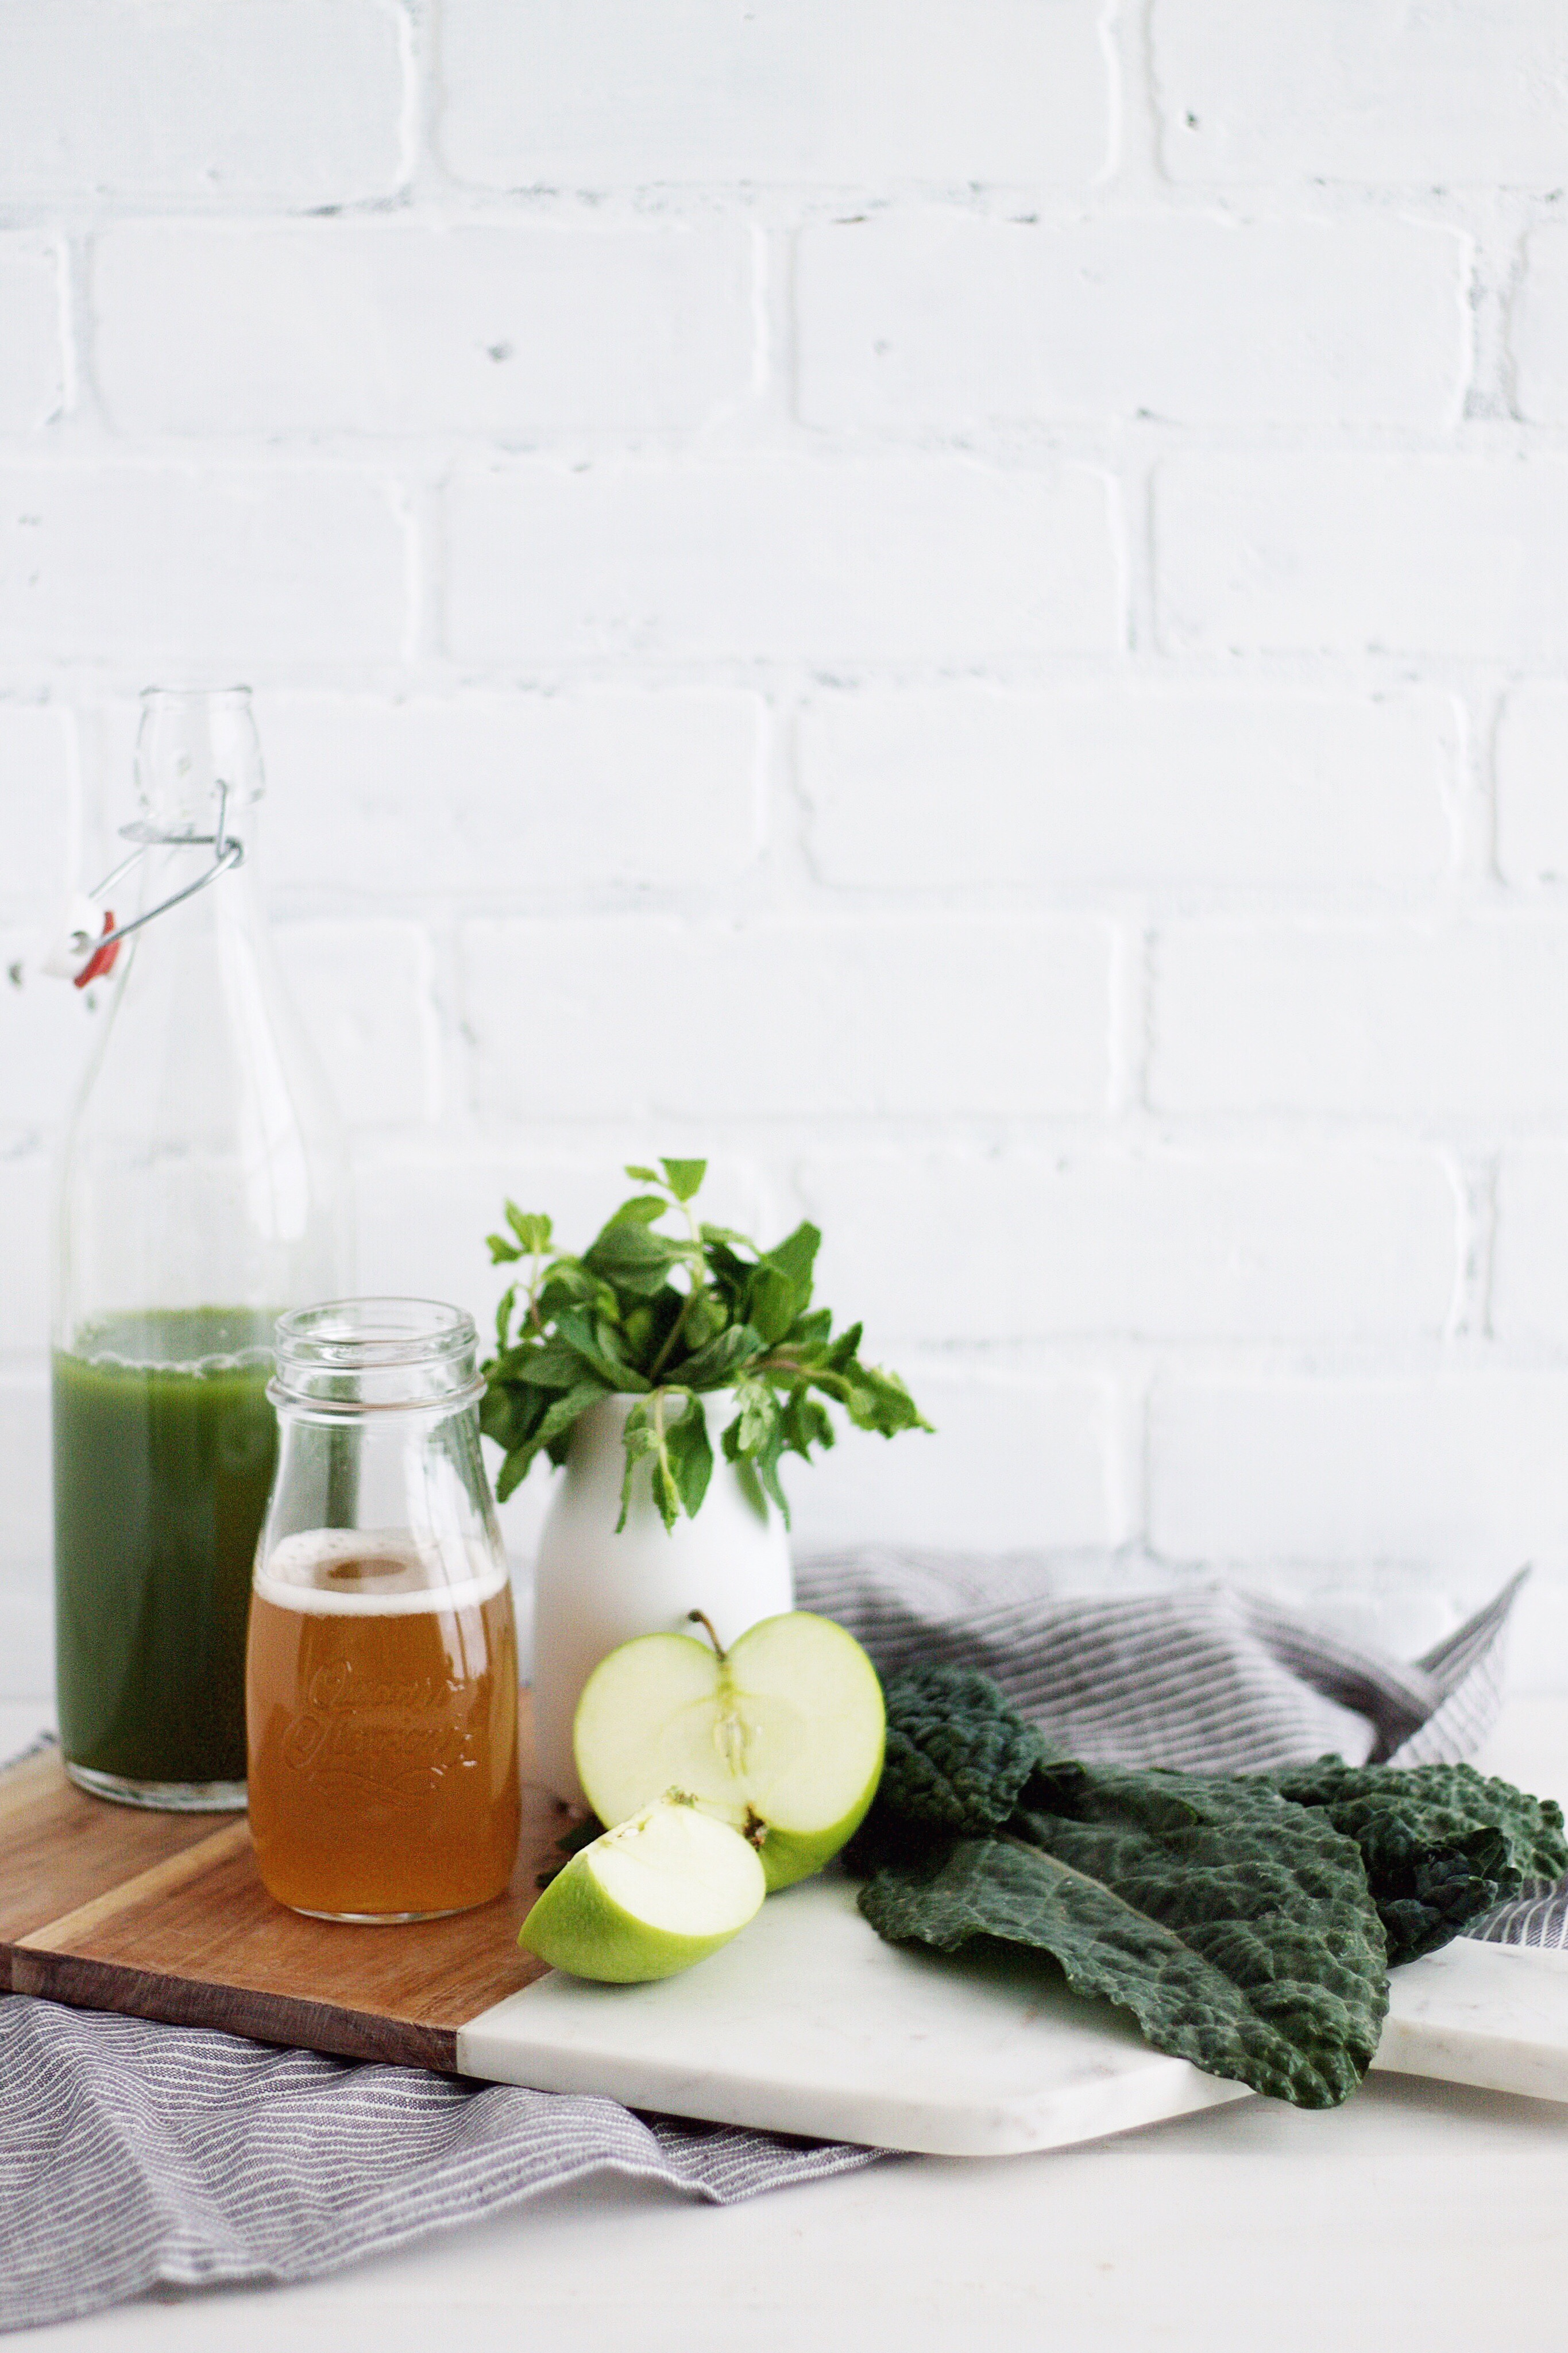 Start your day off with a minty kombucha mocktail made with all your favorite green juice ingredients